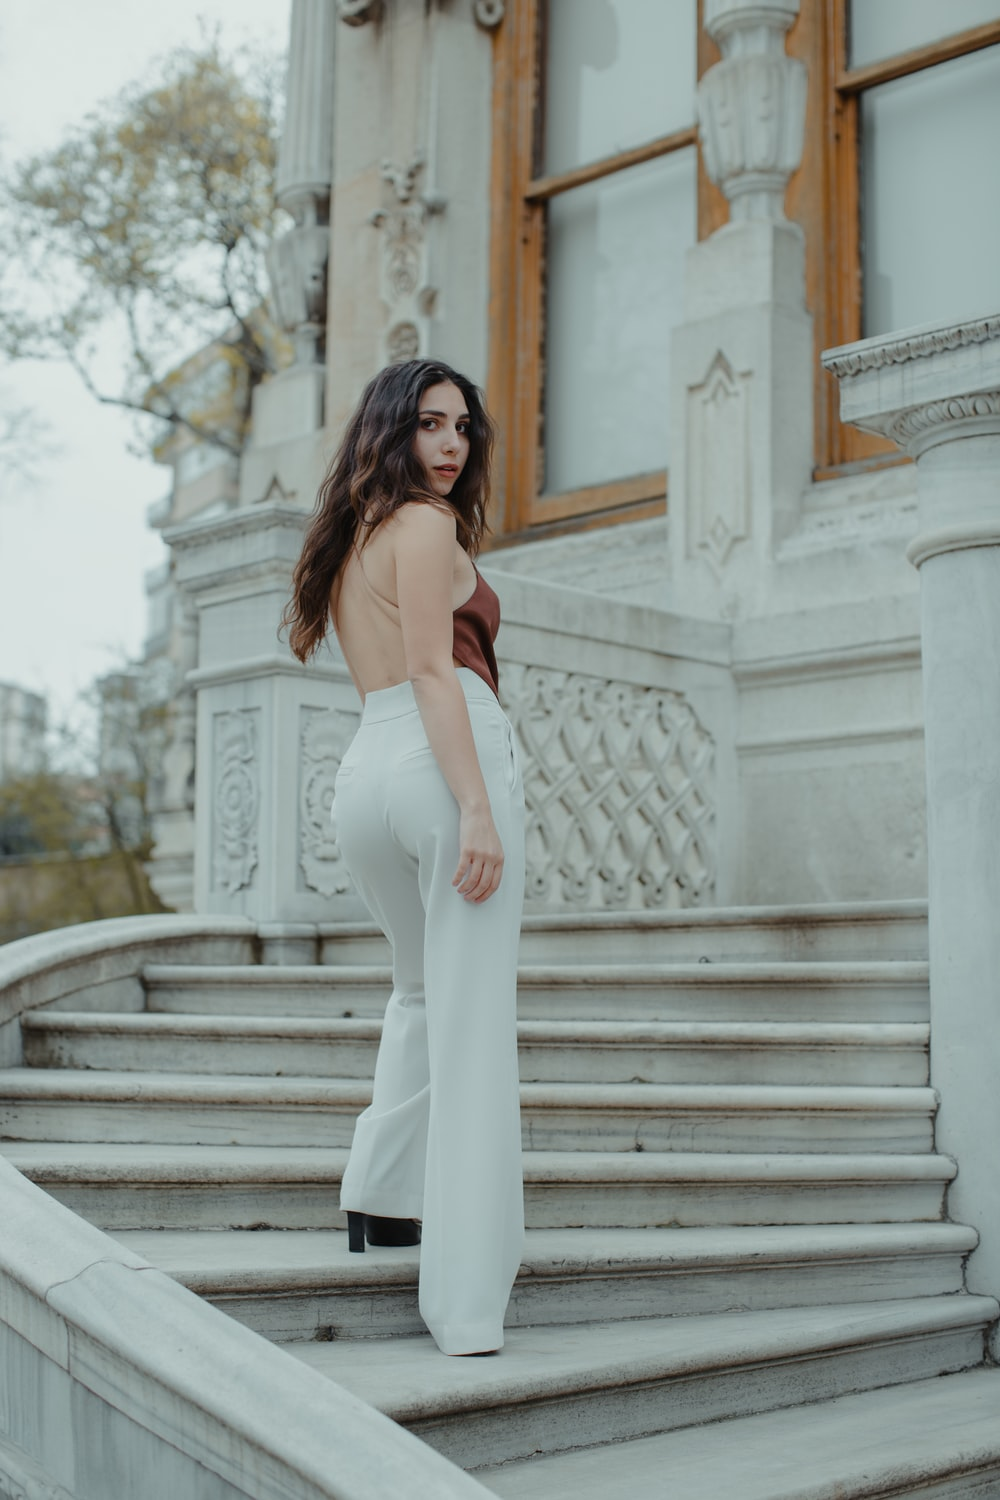 woman in white sleeveless dress standing on stairs during daytime